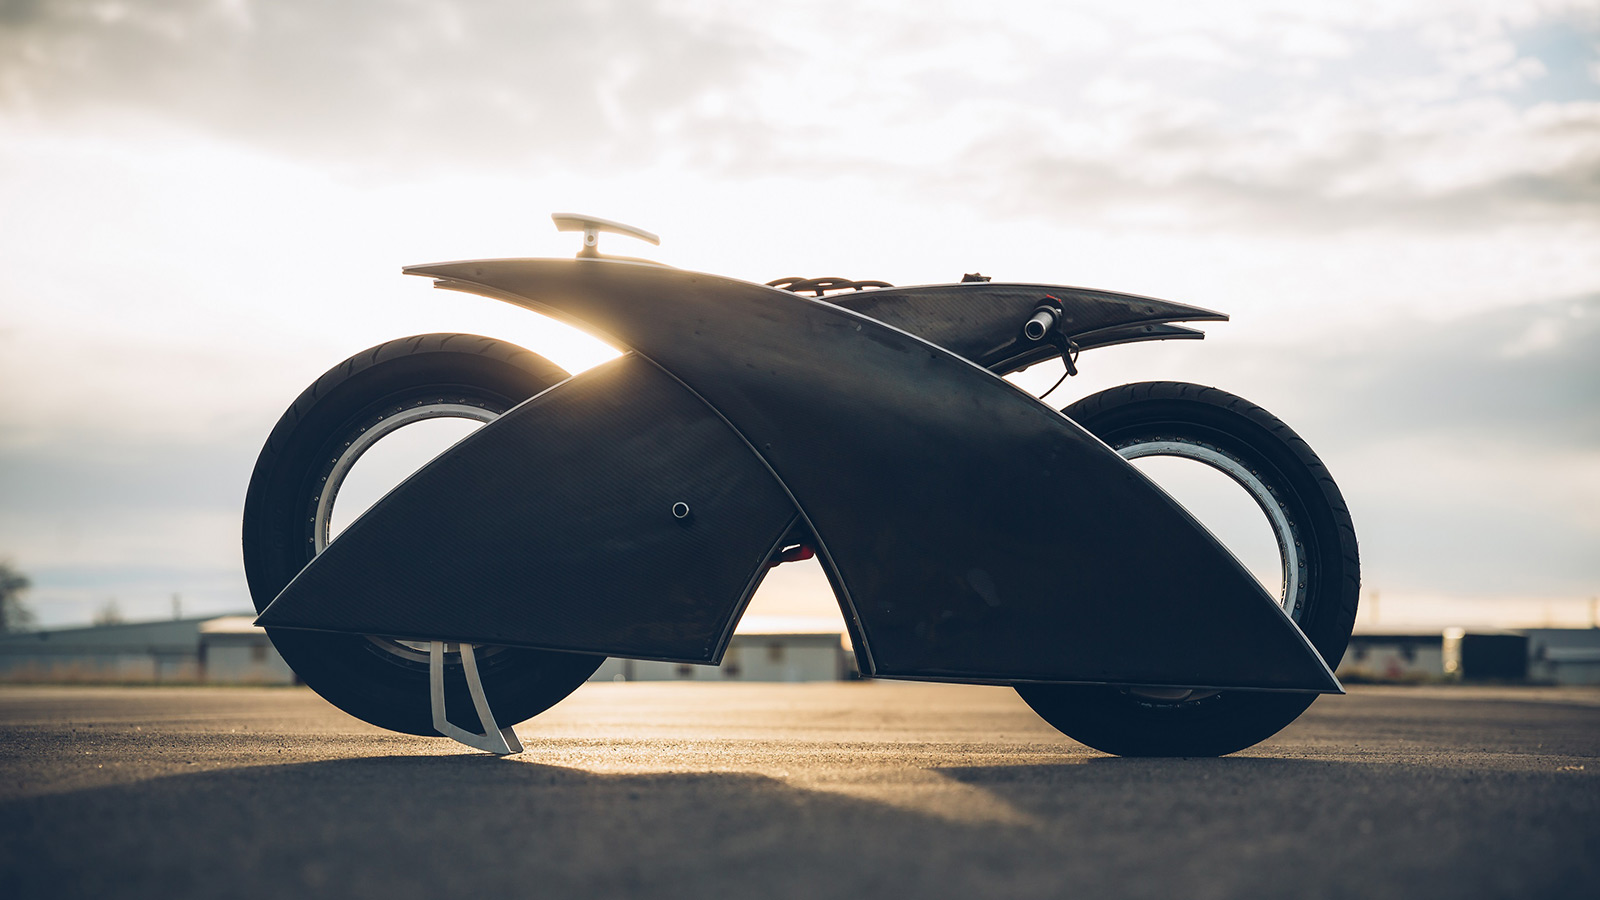 Racer-x Electric Motorcycle by Mark Atkinson